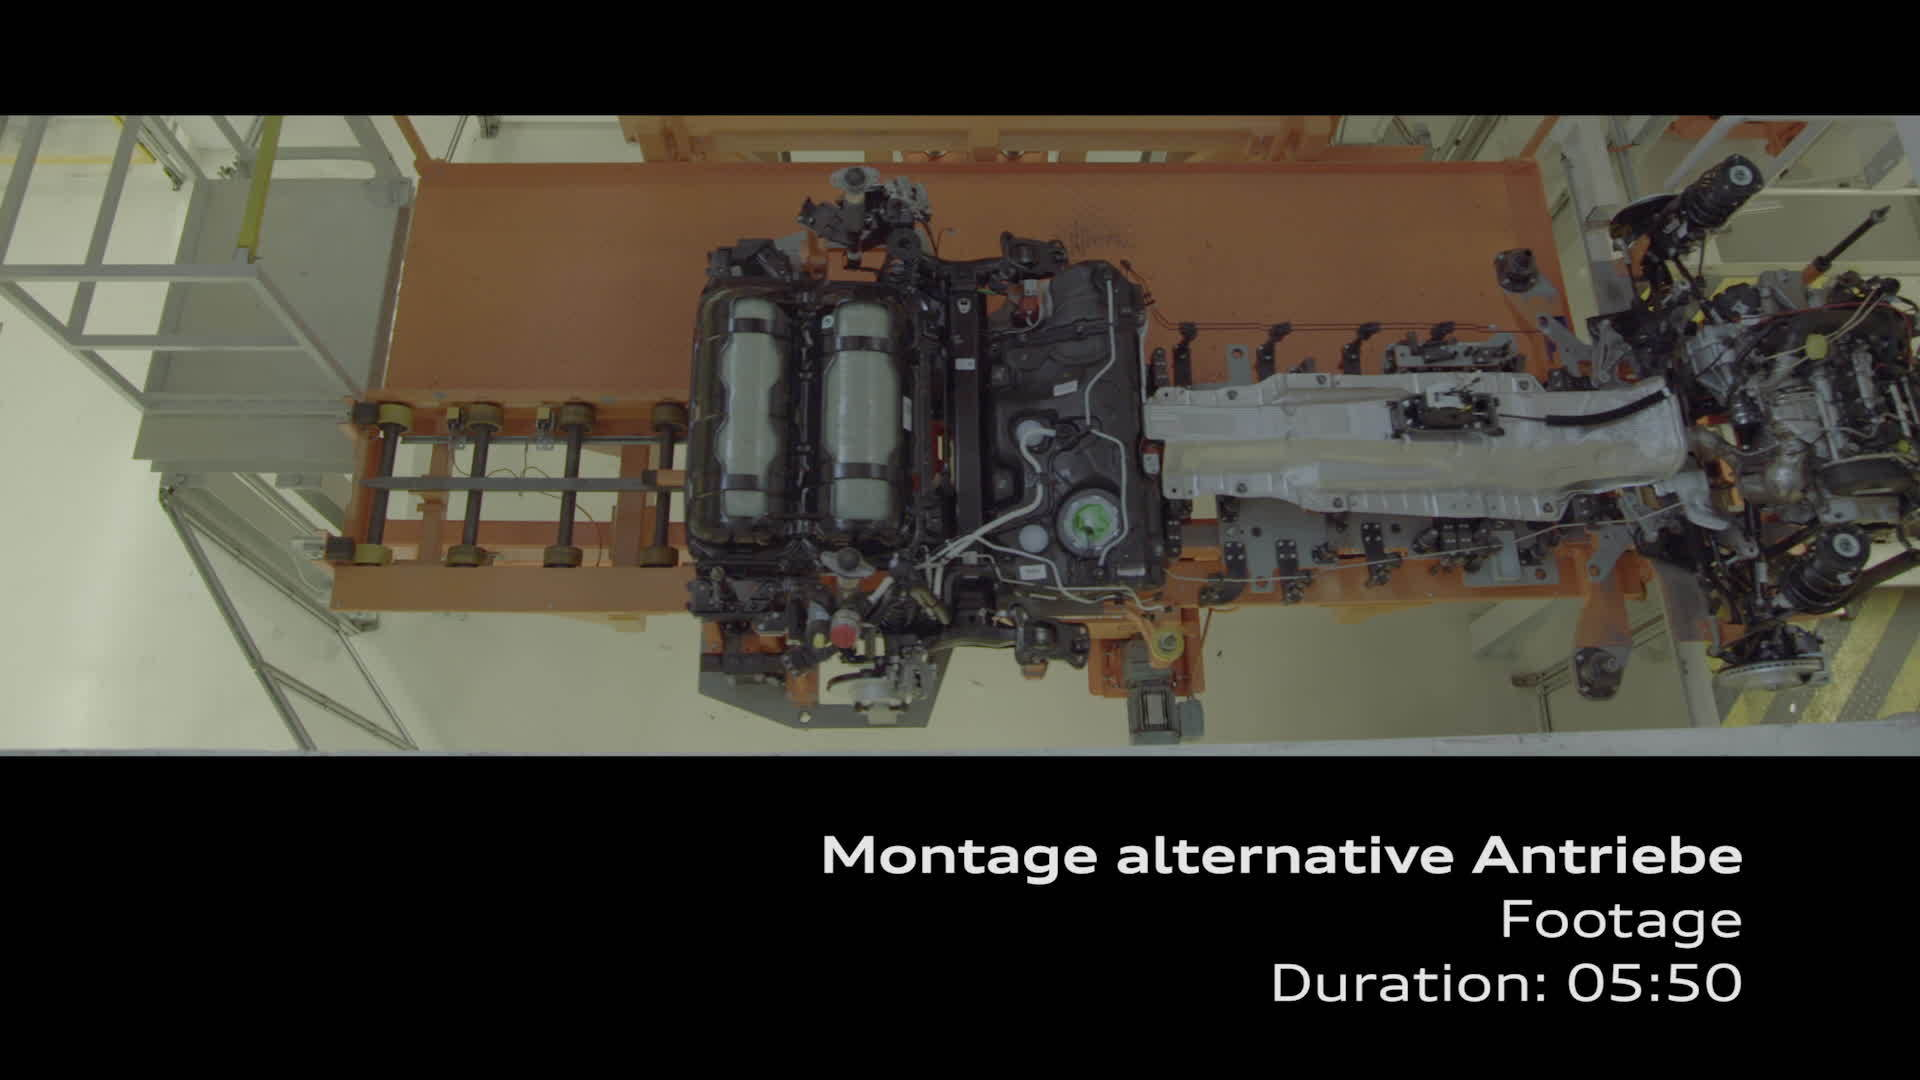 Footage assembly alternative drive systems